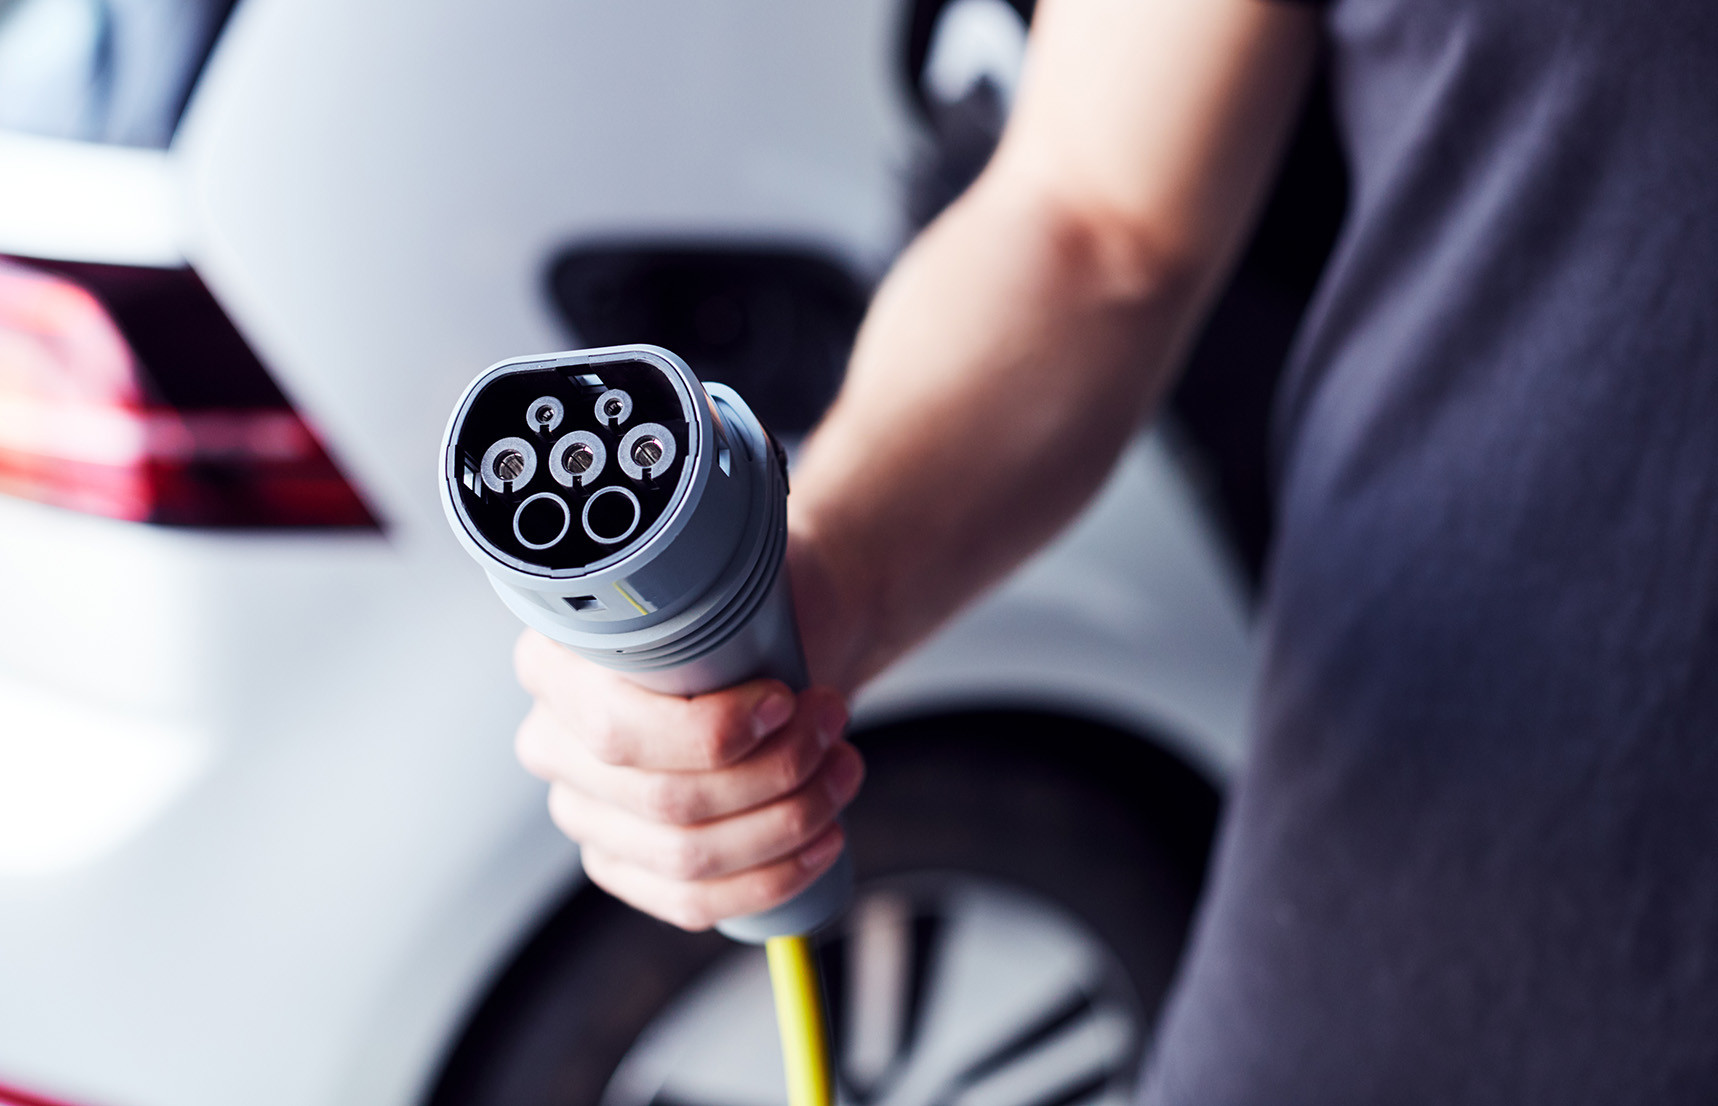 Photo of a person with electric vehicle holding an EV charging plug